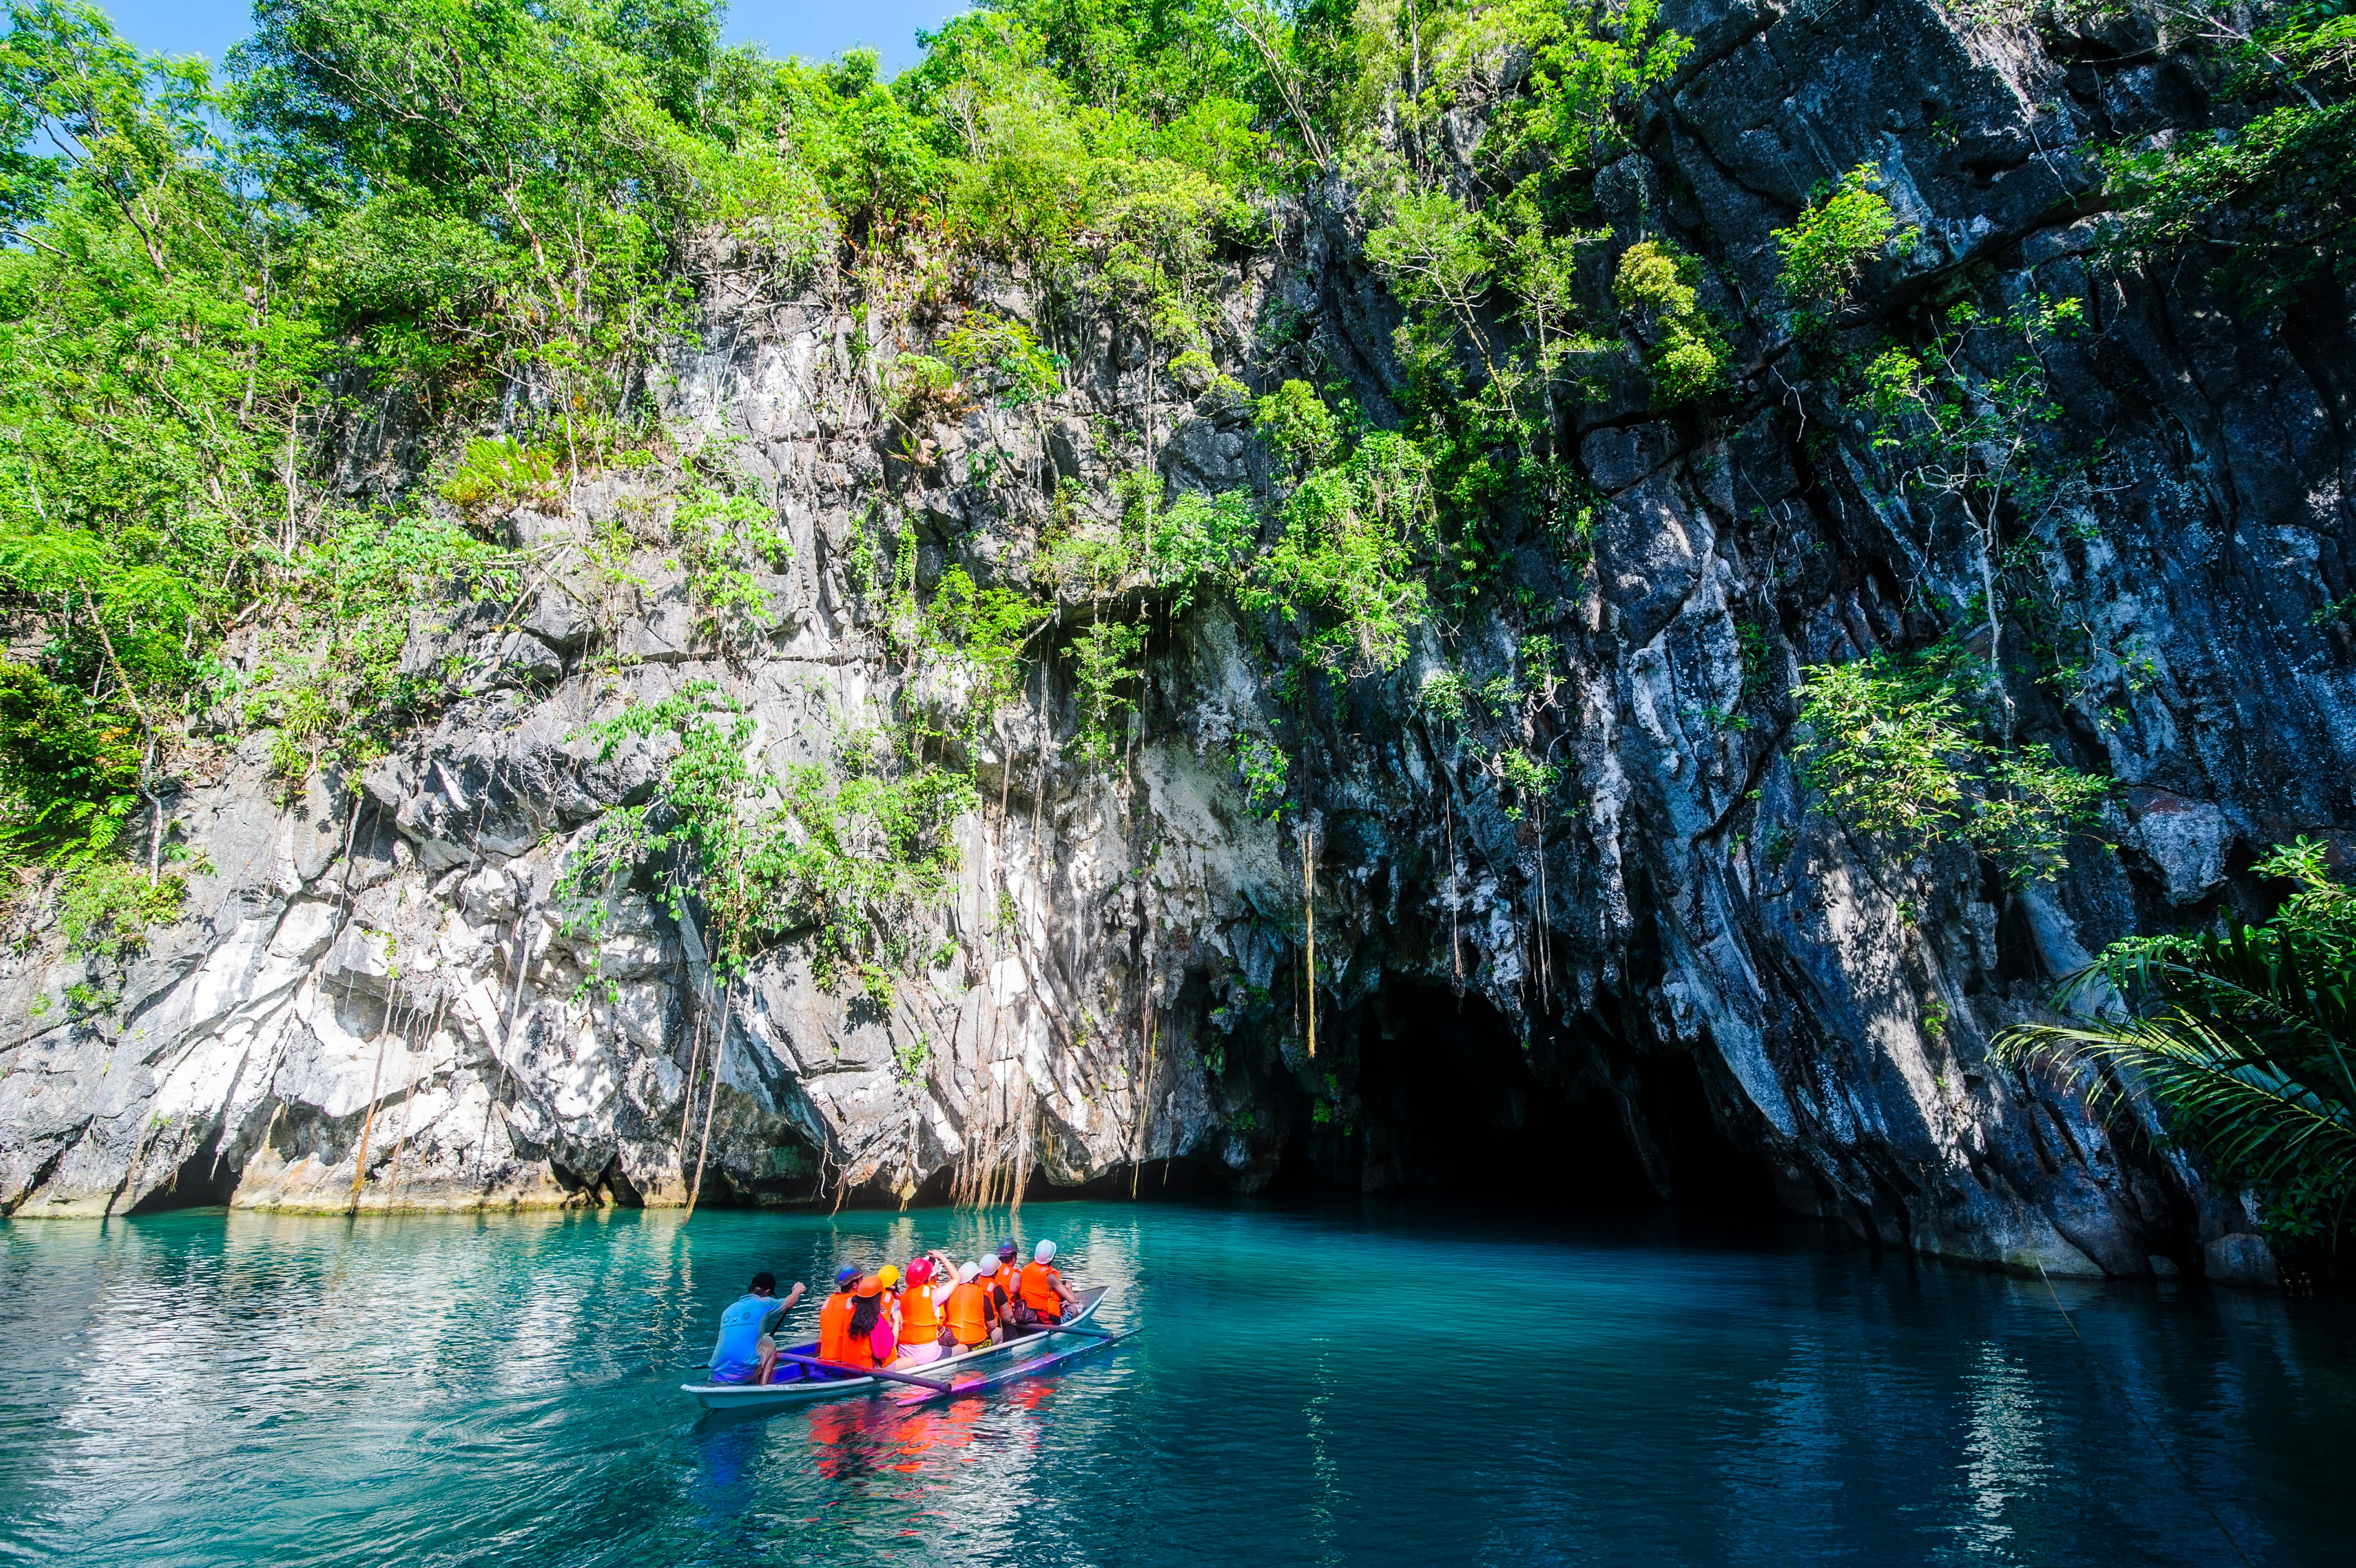 A boat full of travelers about to explore Puerto Princesa Underground River